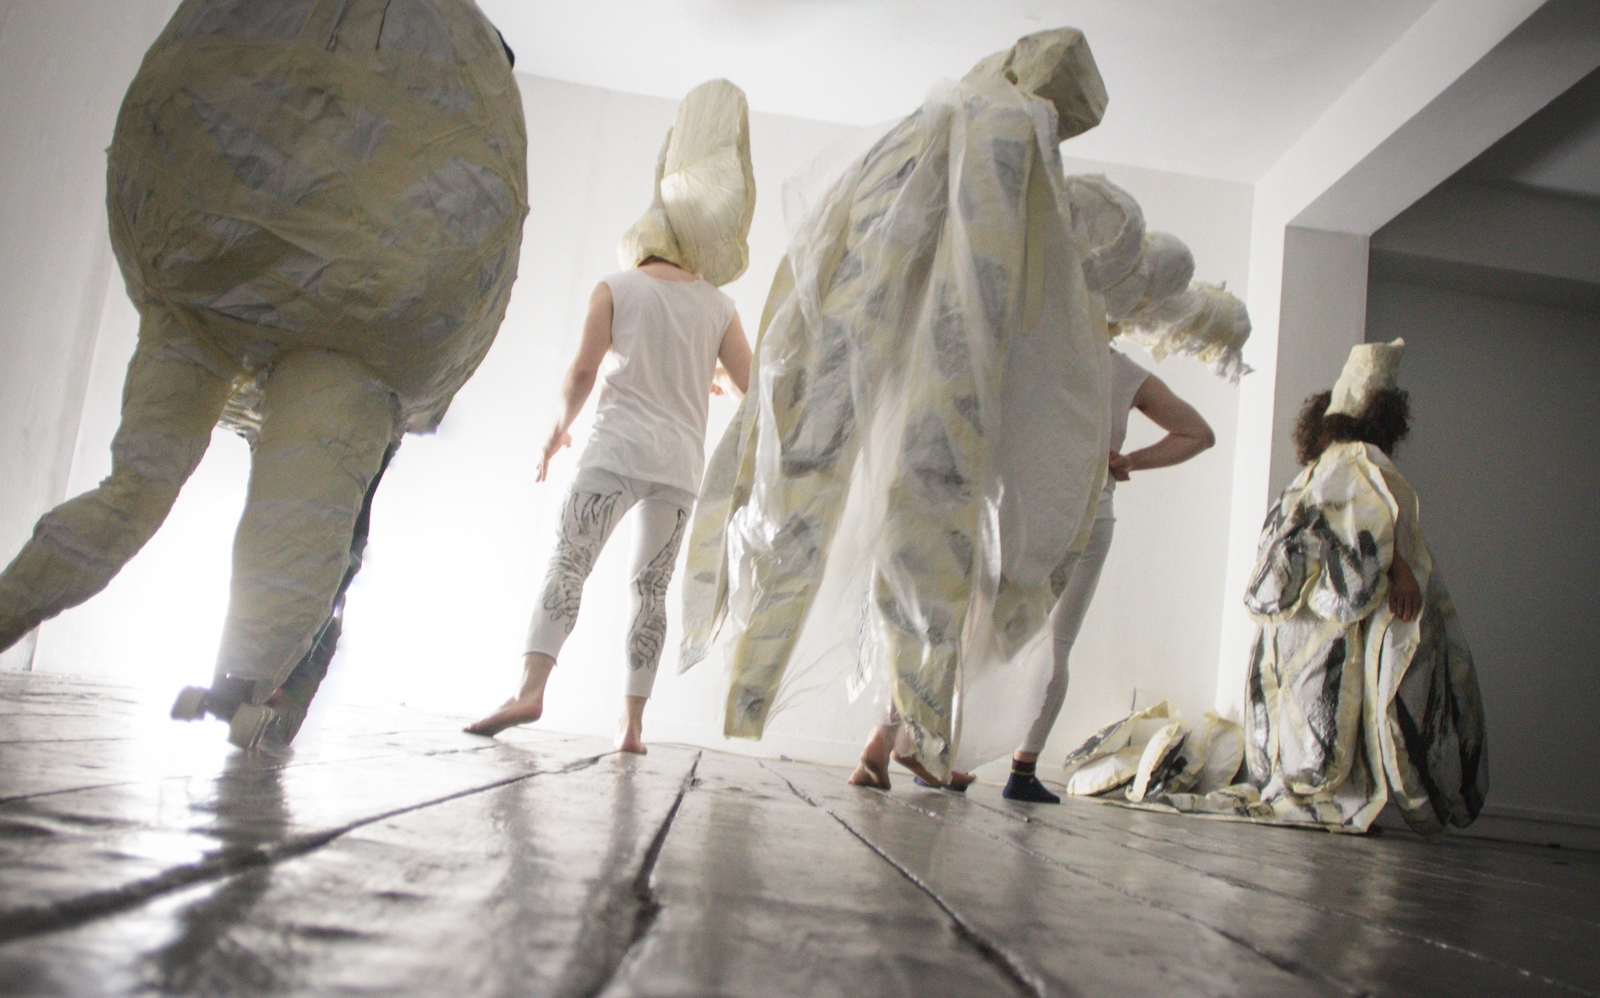 Celina Muldoon, 'Untitled' Live Installation - Performance, Temple Bar Gallery and Studios, May 2017, 30.jpg